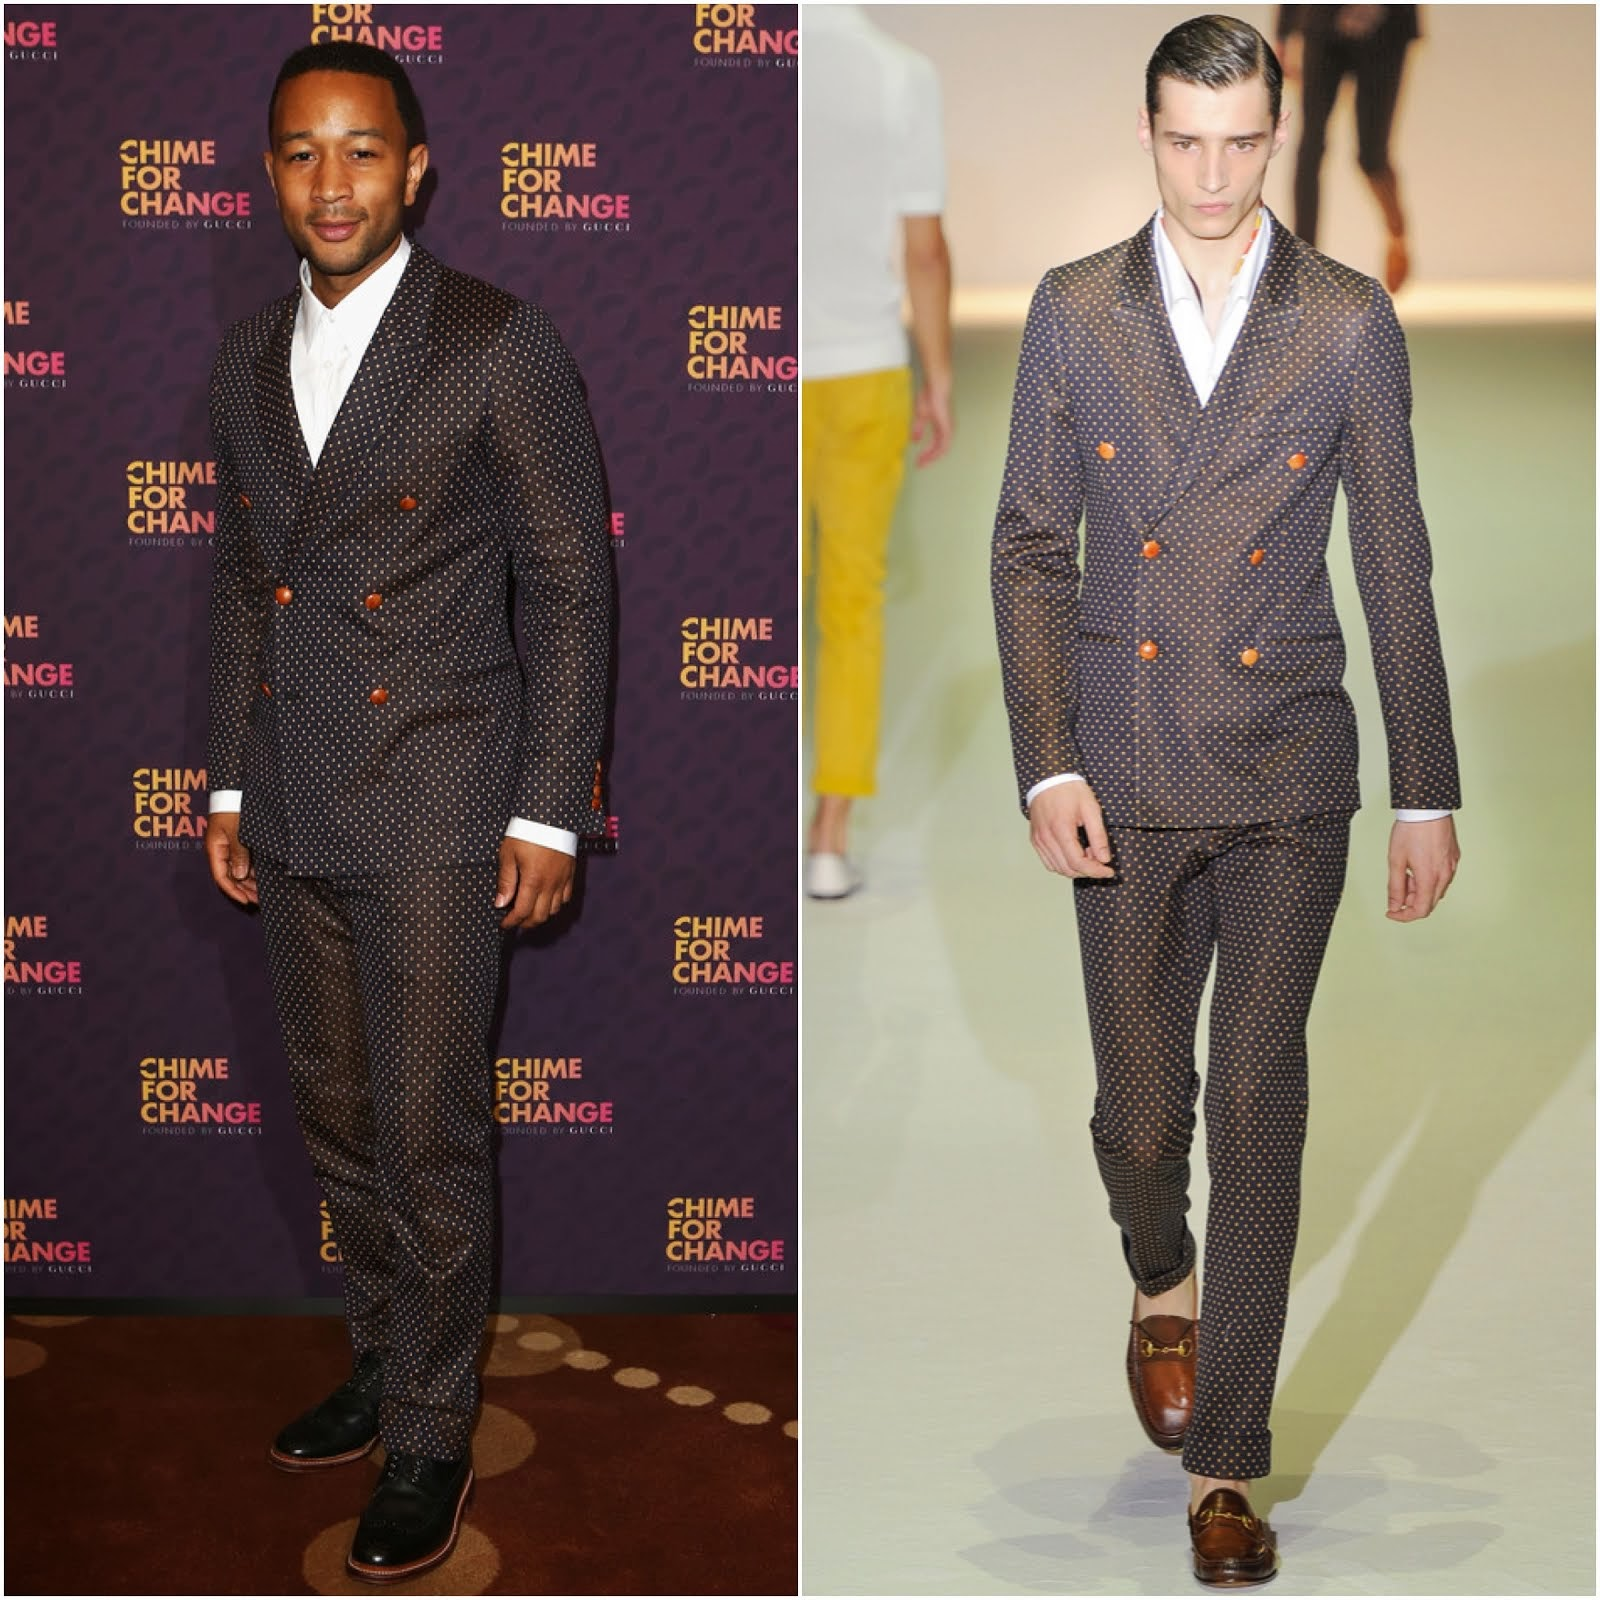 00O00 Menswear Blog: John Legend in Gucci - 'Chime For Change: The Sound Of Change Live' London June 2013 Concert